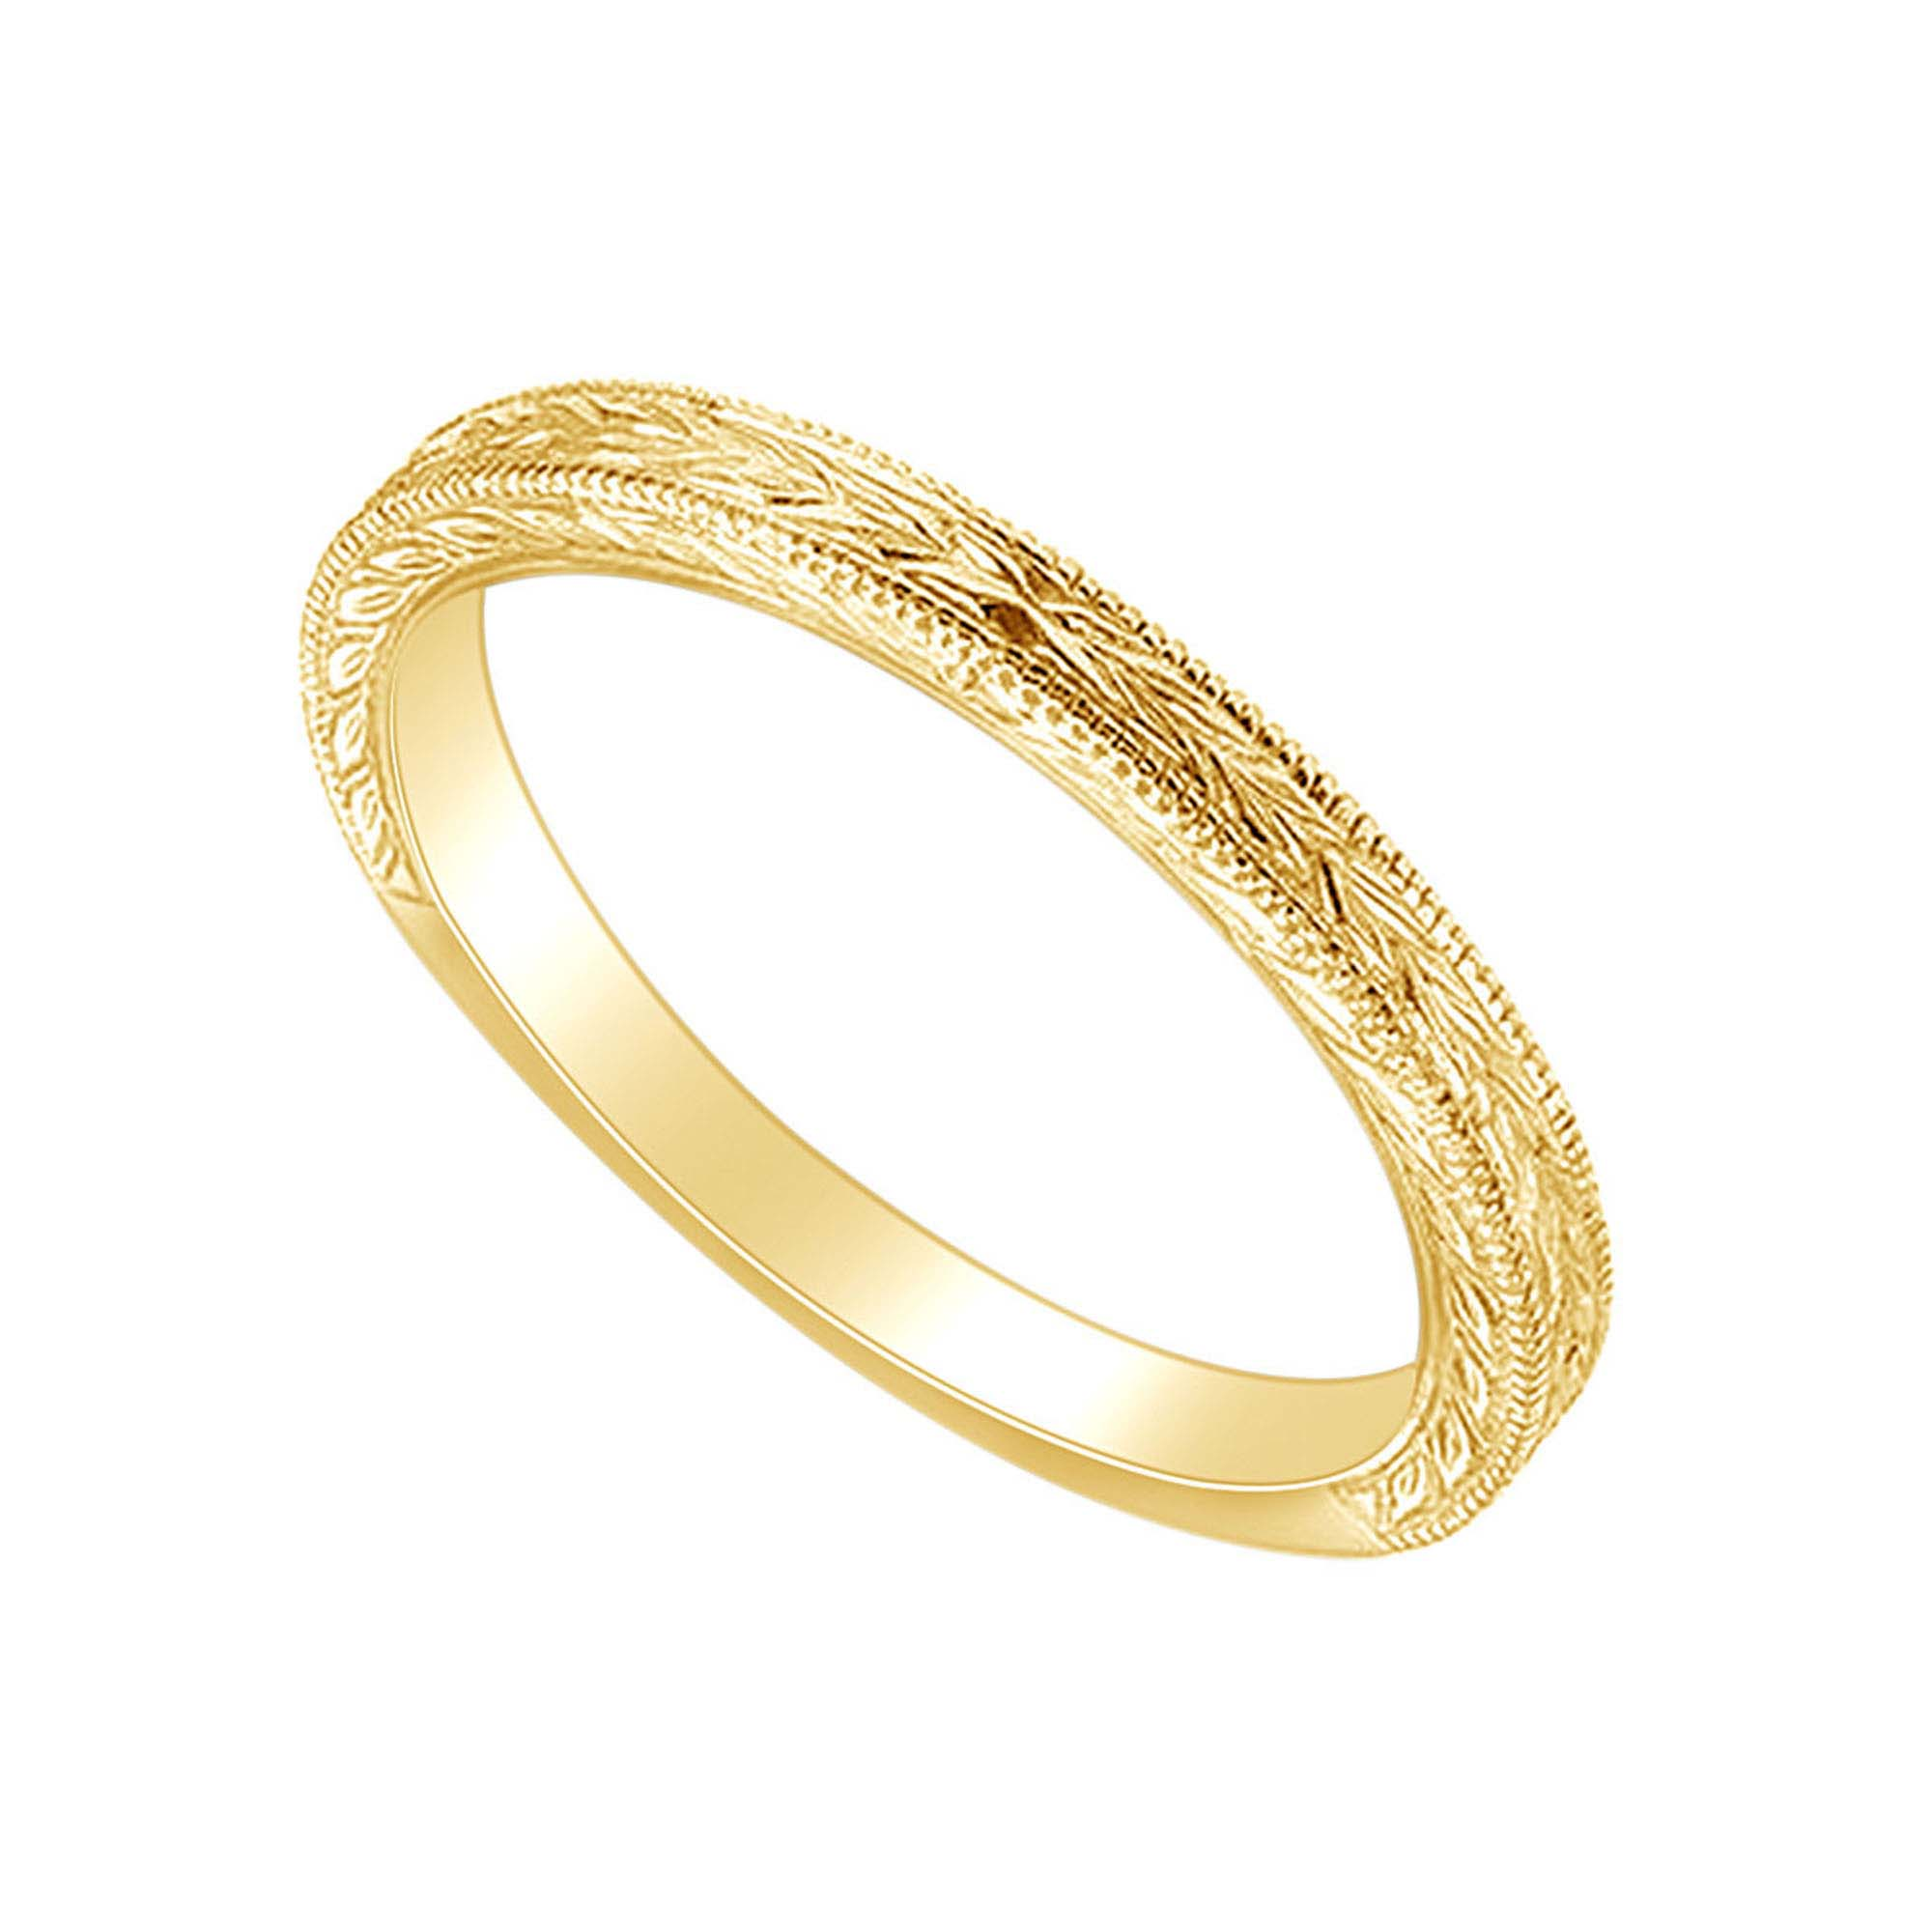 Ring Wrapped Around Leaf Design Real 14K Yellow Gold